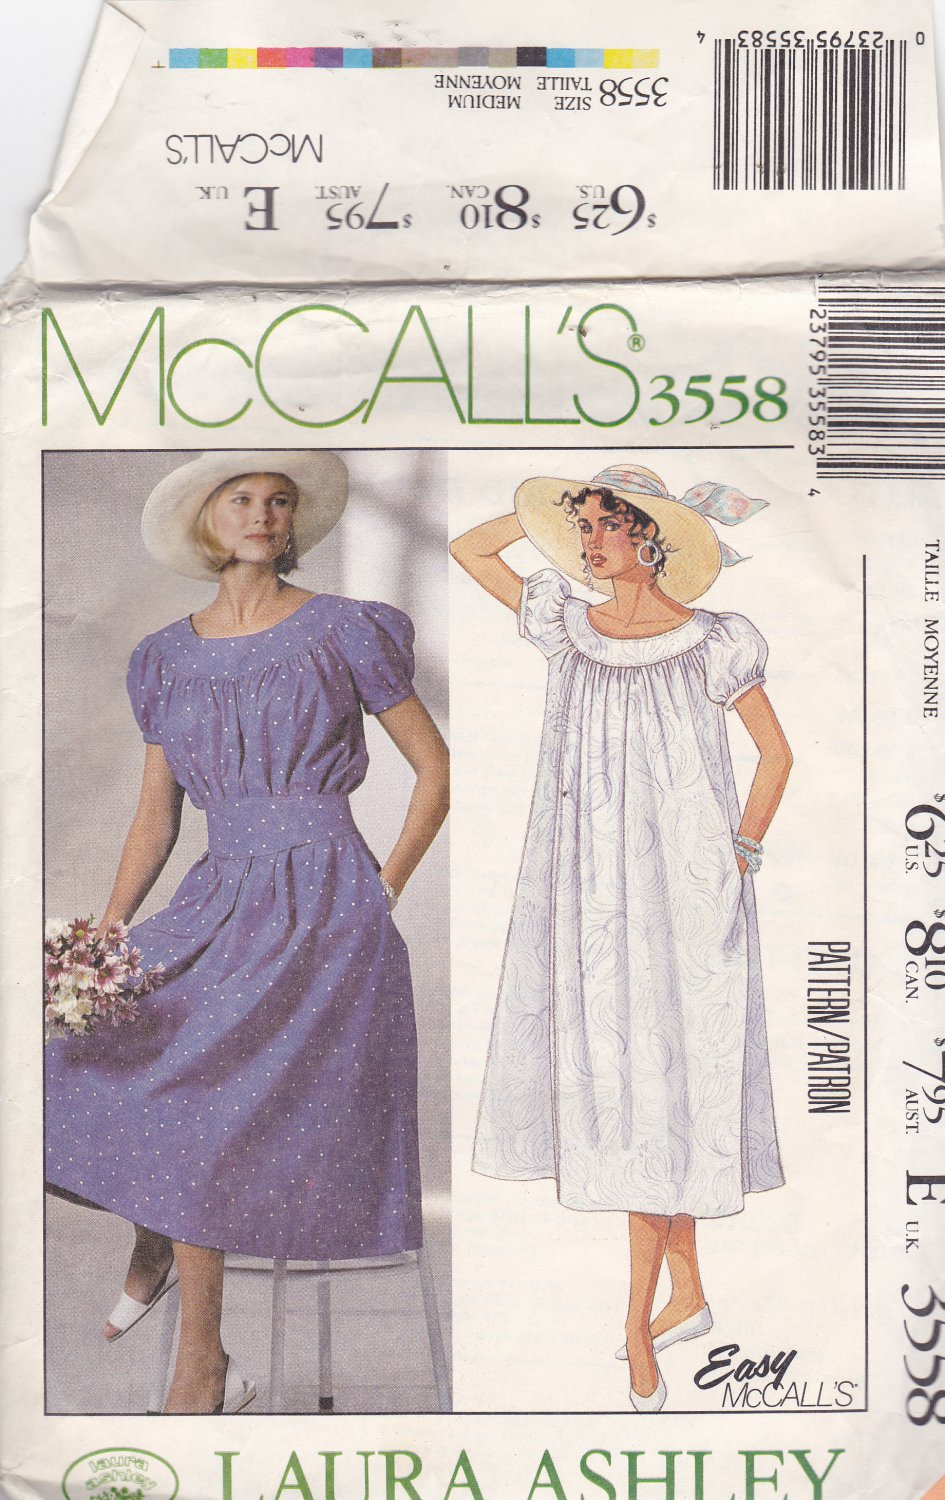 McCall's 3558 size medium (14 16) Laura Ashley, may be missing pieces